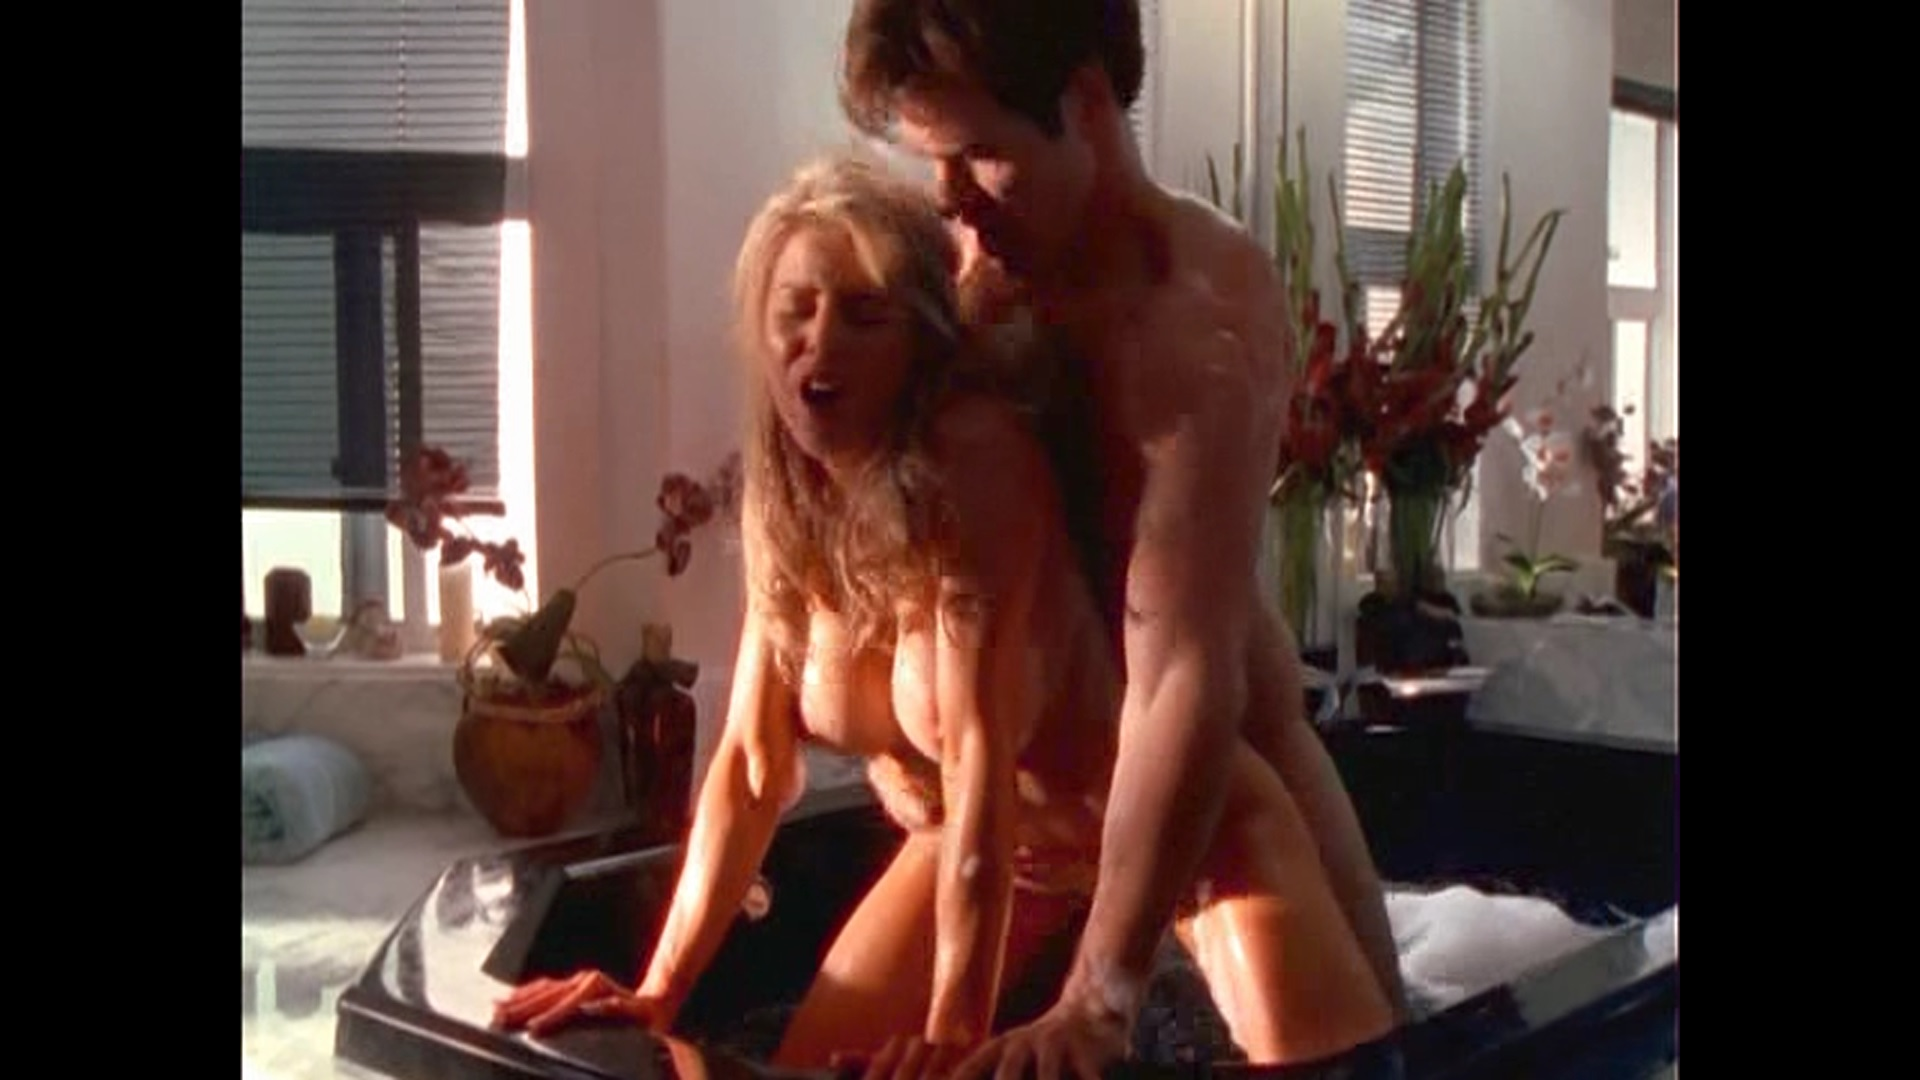 American Pie The Movie Nude Scene 92